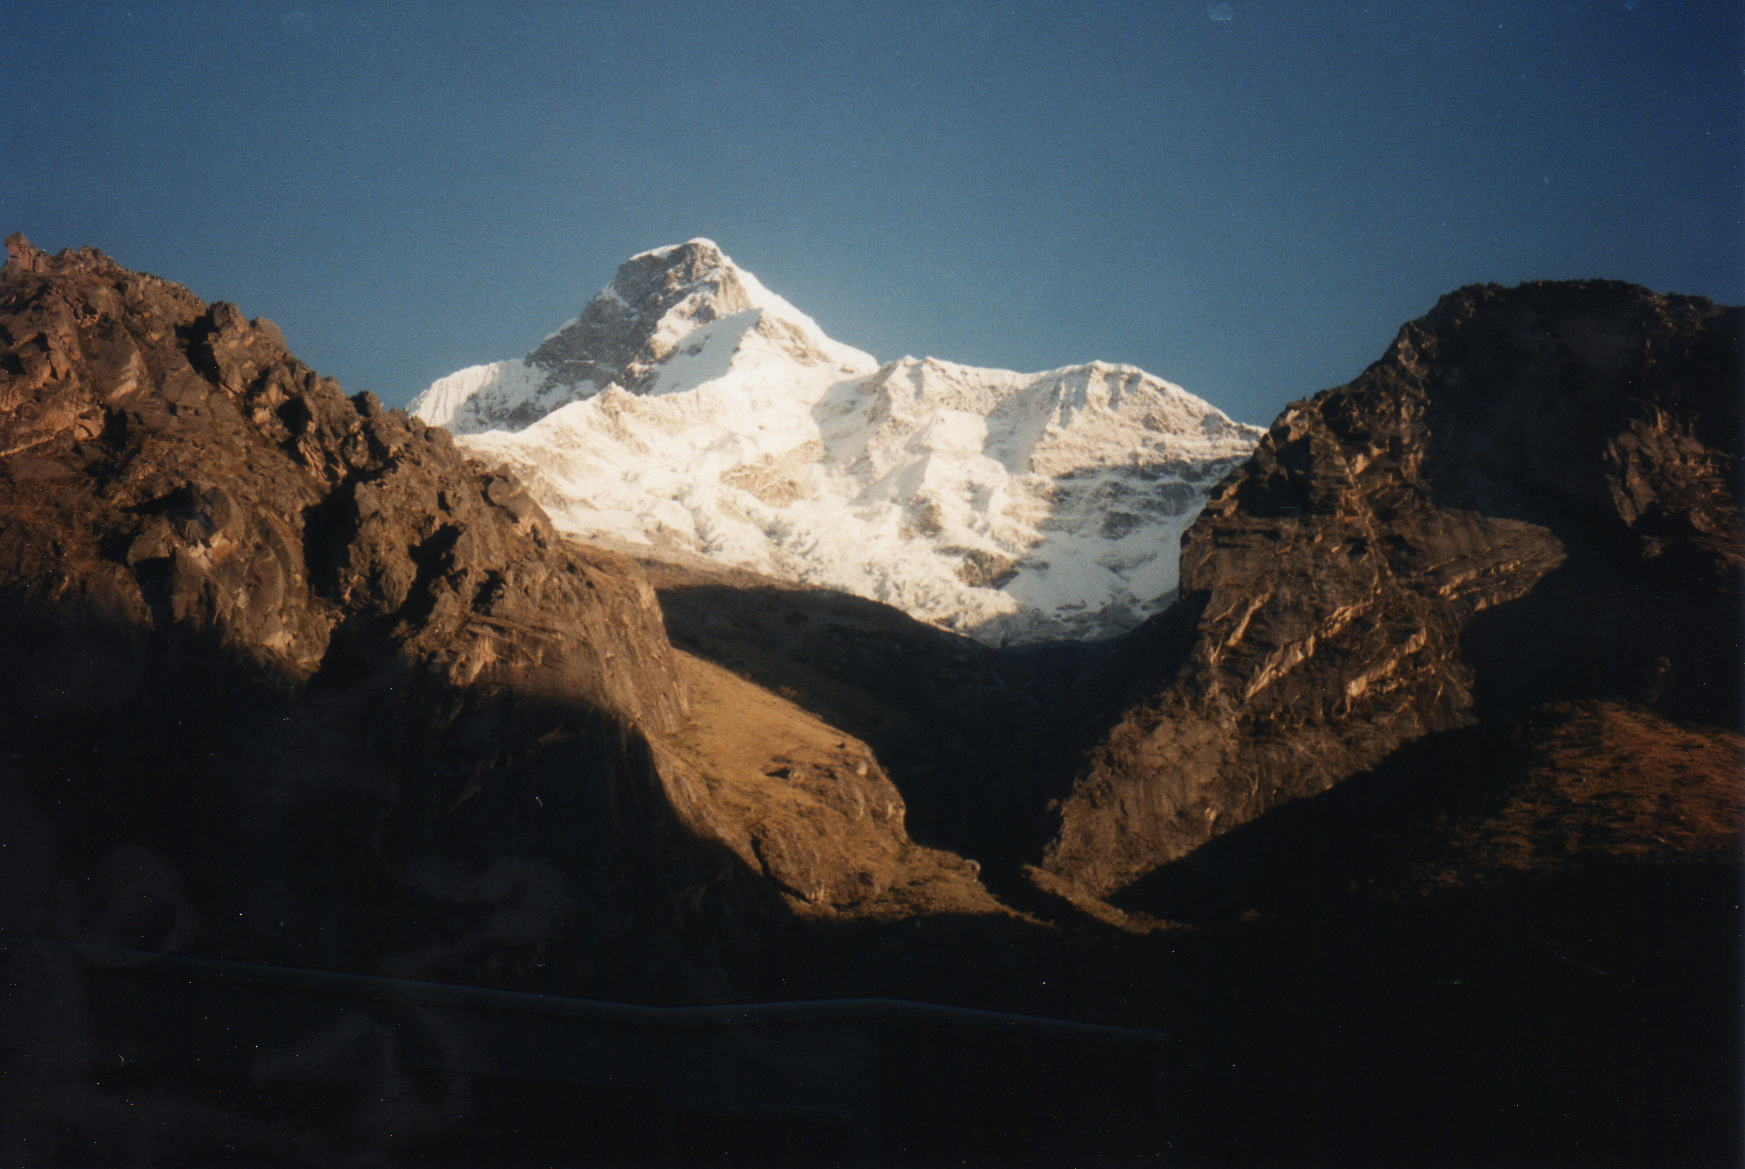 The Peaks of the Huascaran National Park